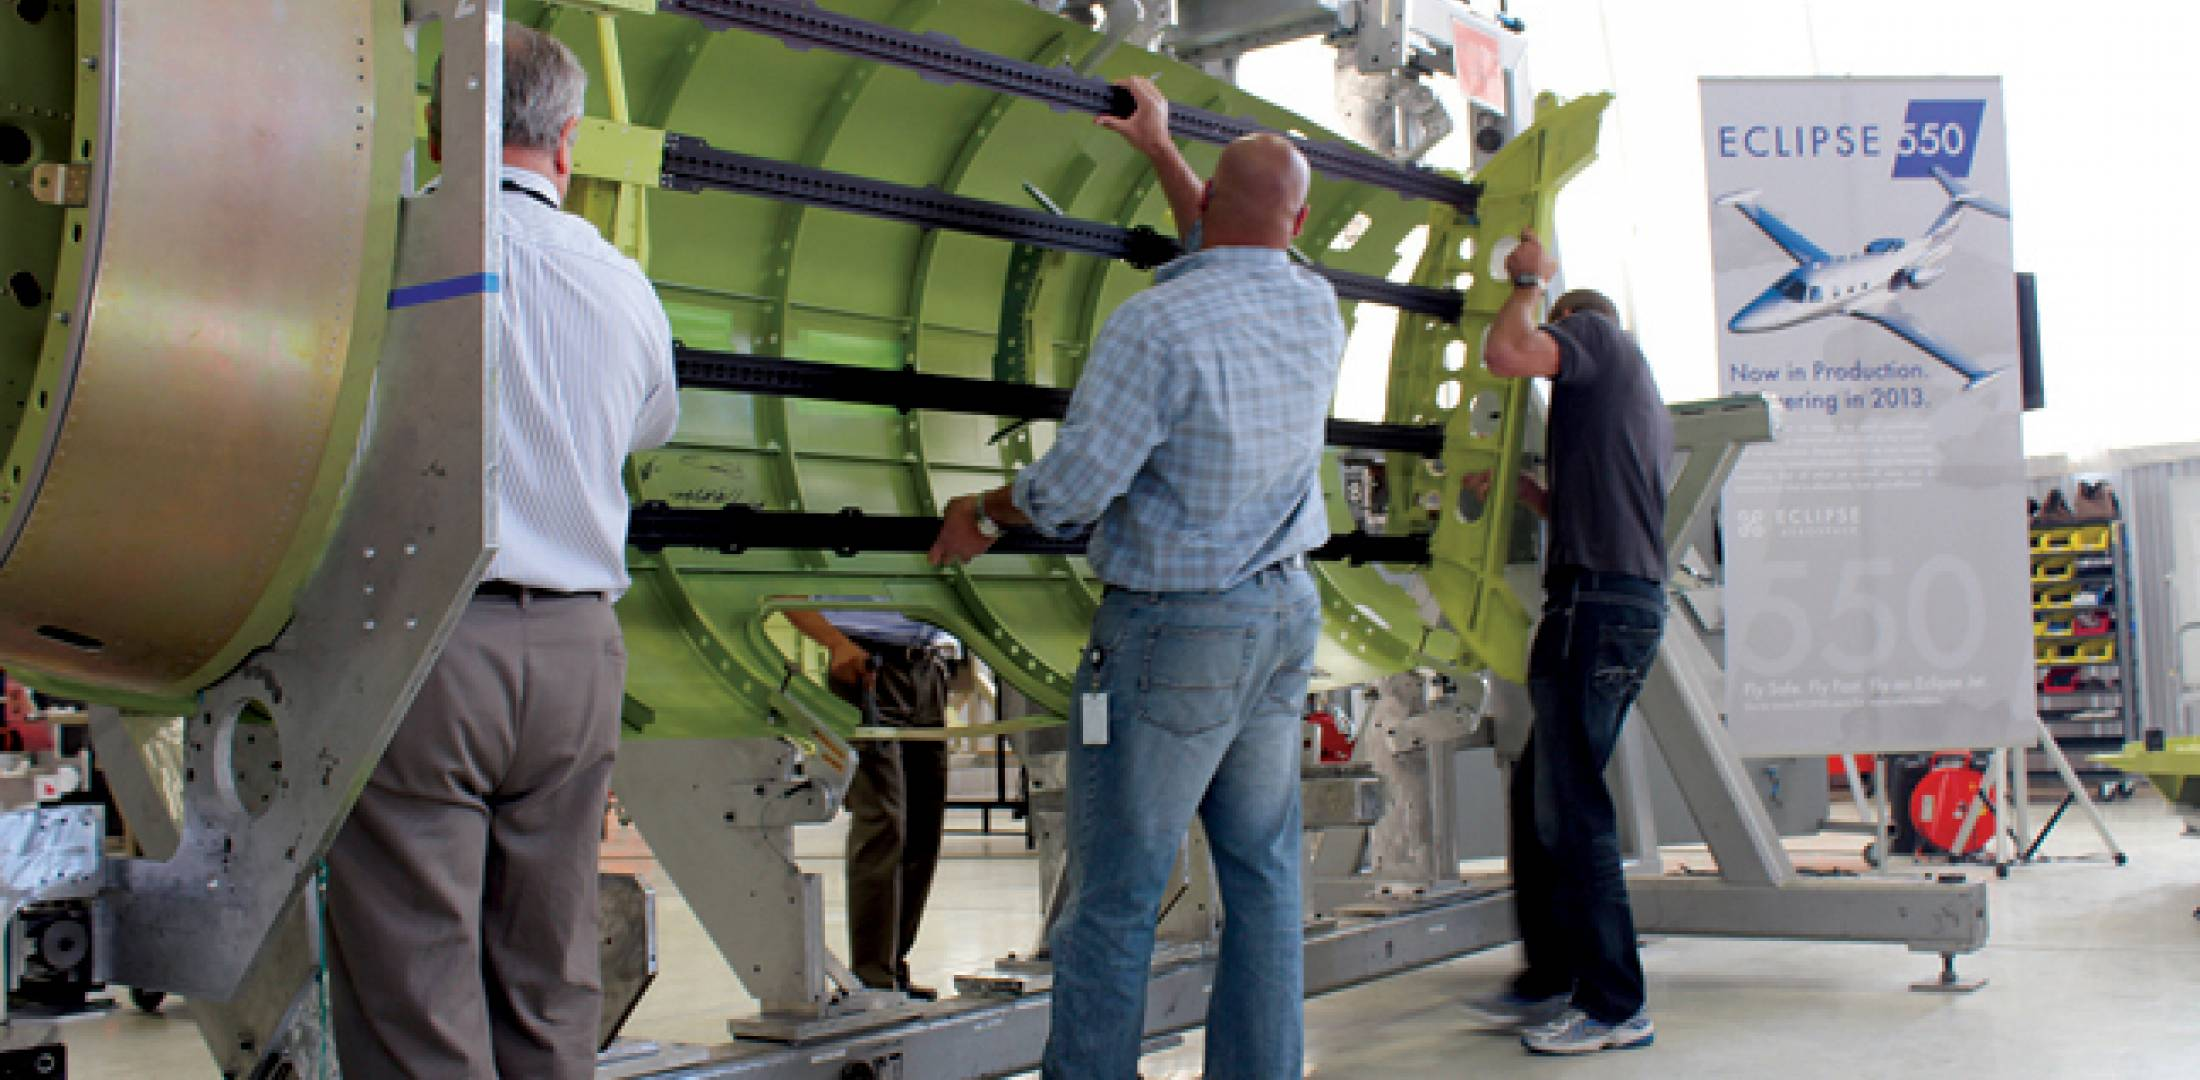 The Eclipse production team mated the forward keel assembly to the fuselage for the first Eclipse 550 during a dealer and sales conference at the company's Albuquerque, N.M. headquarters on May 31. The airplane will be delivered next year.